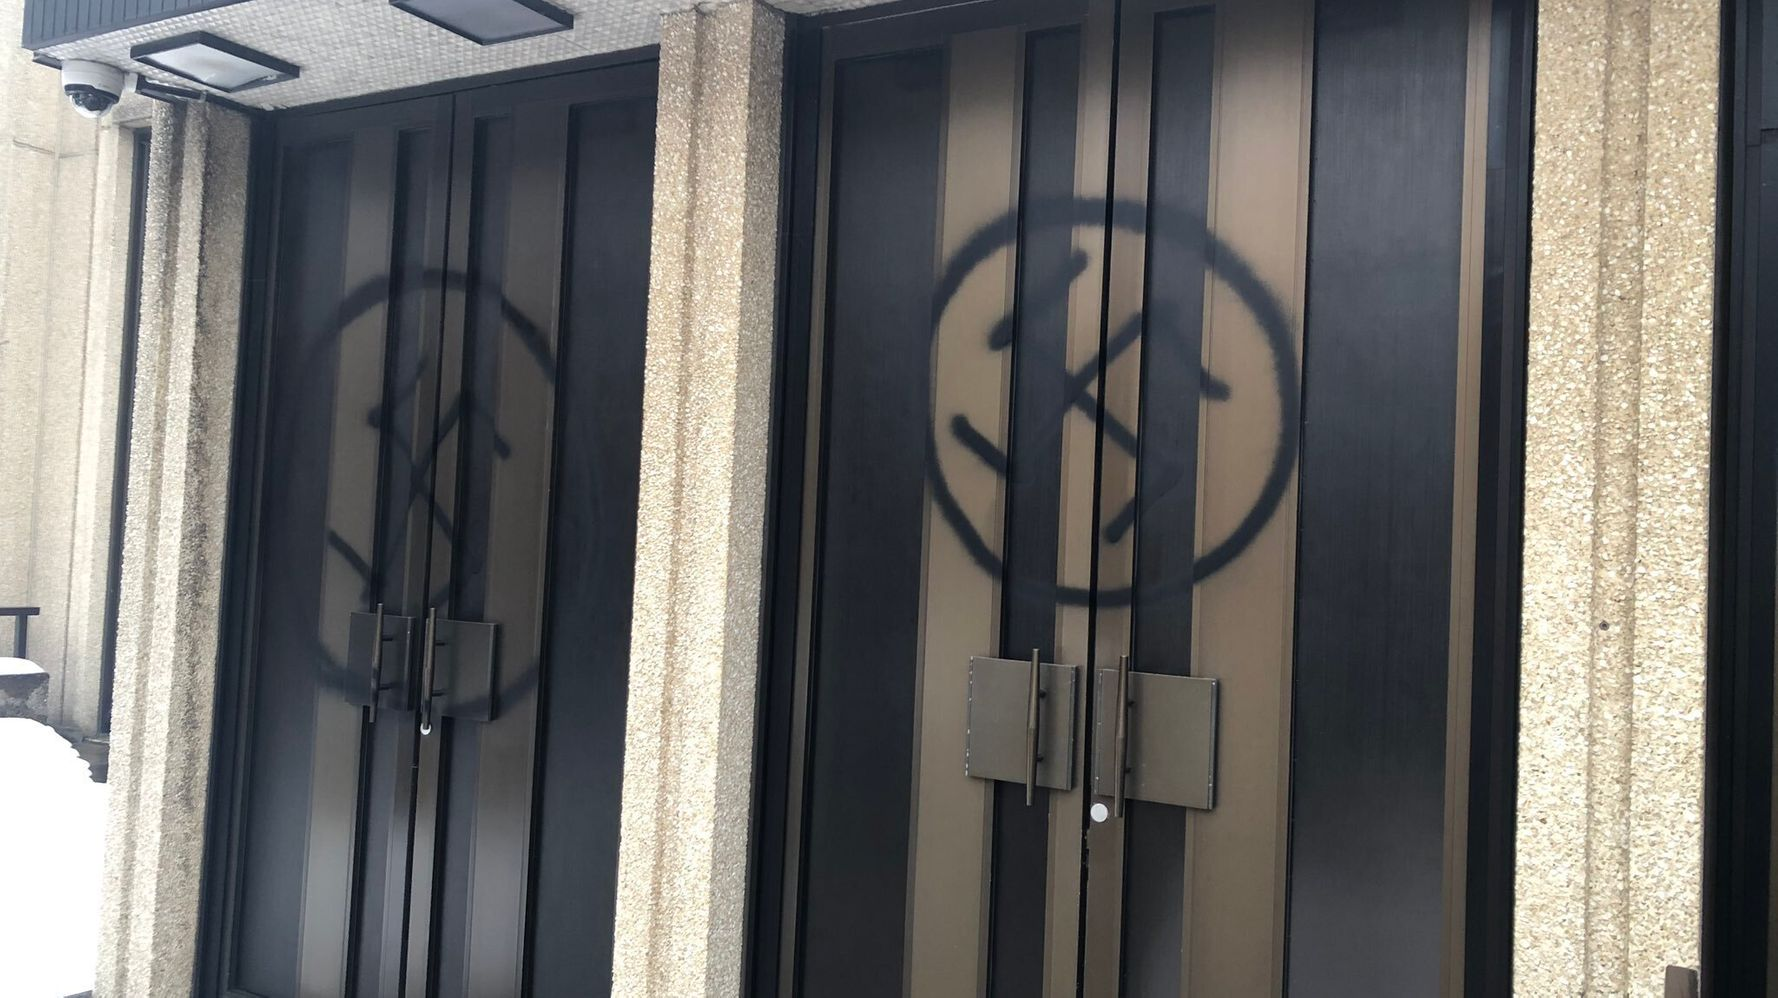 Montreal Synagogue Vandalized With Swastikas In 'Vile Assault'